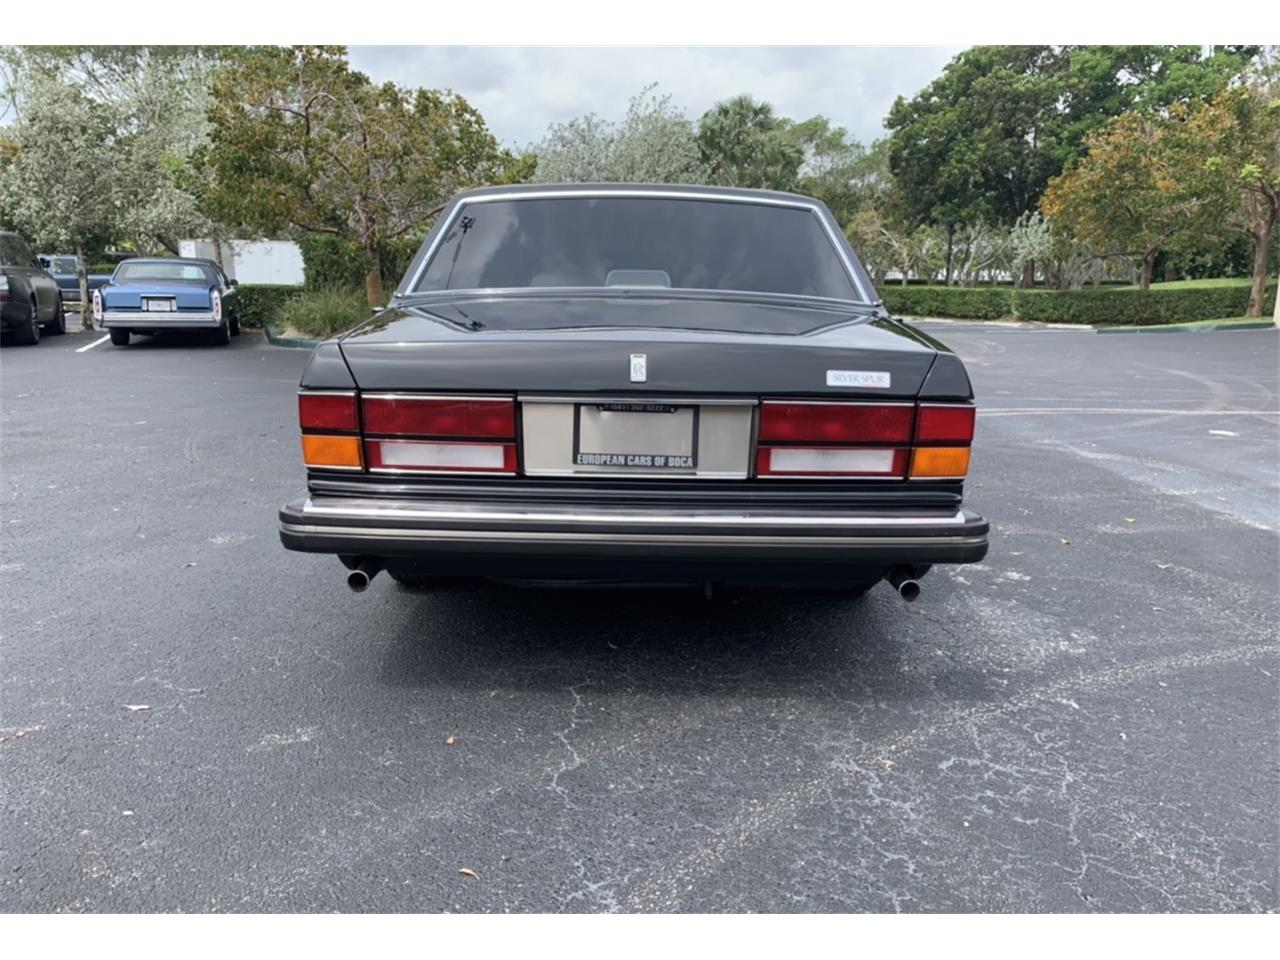 1987 Rolls-Royce Silver Spur (CC-1205274) for sale in BOCA RATON, Florida